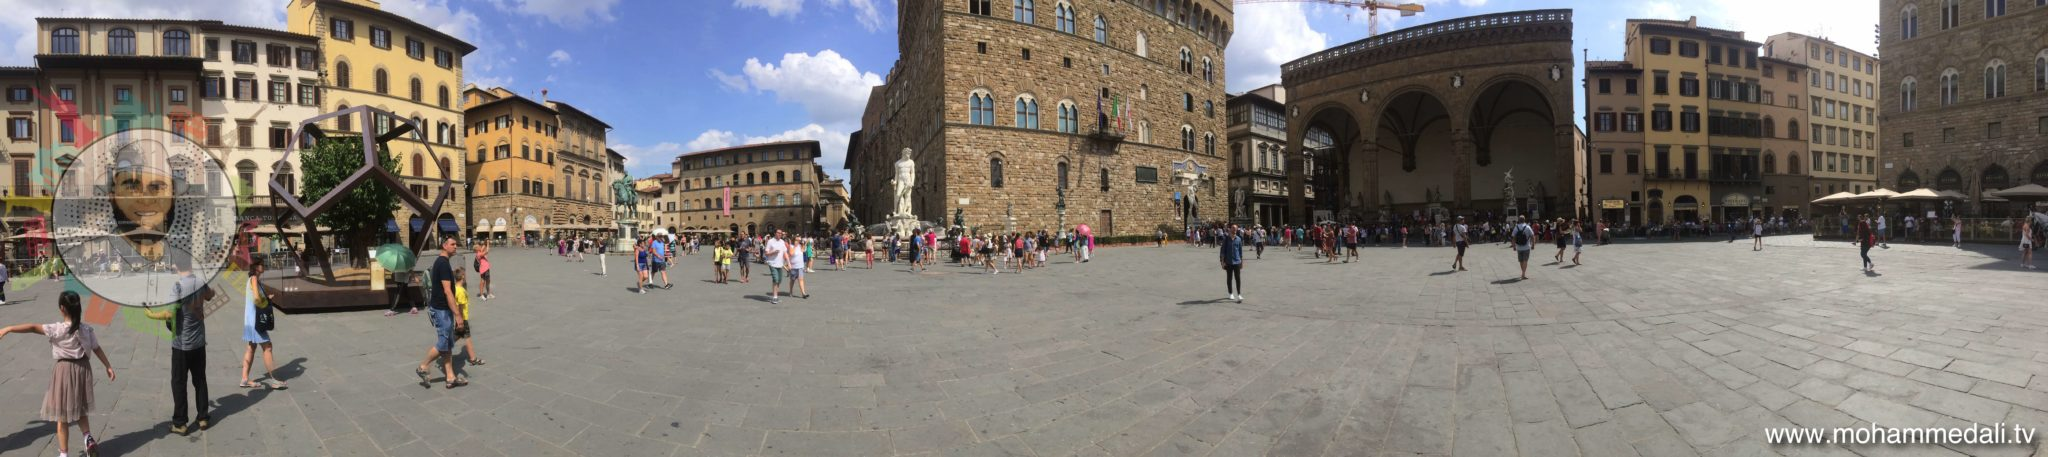 Awesome panoramic view of Piazza della signoria in front of Palazzo Vecchio in Florence, Italy